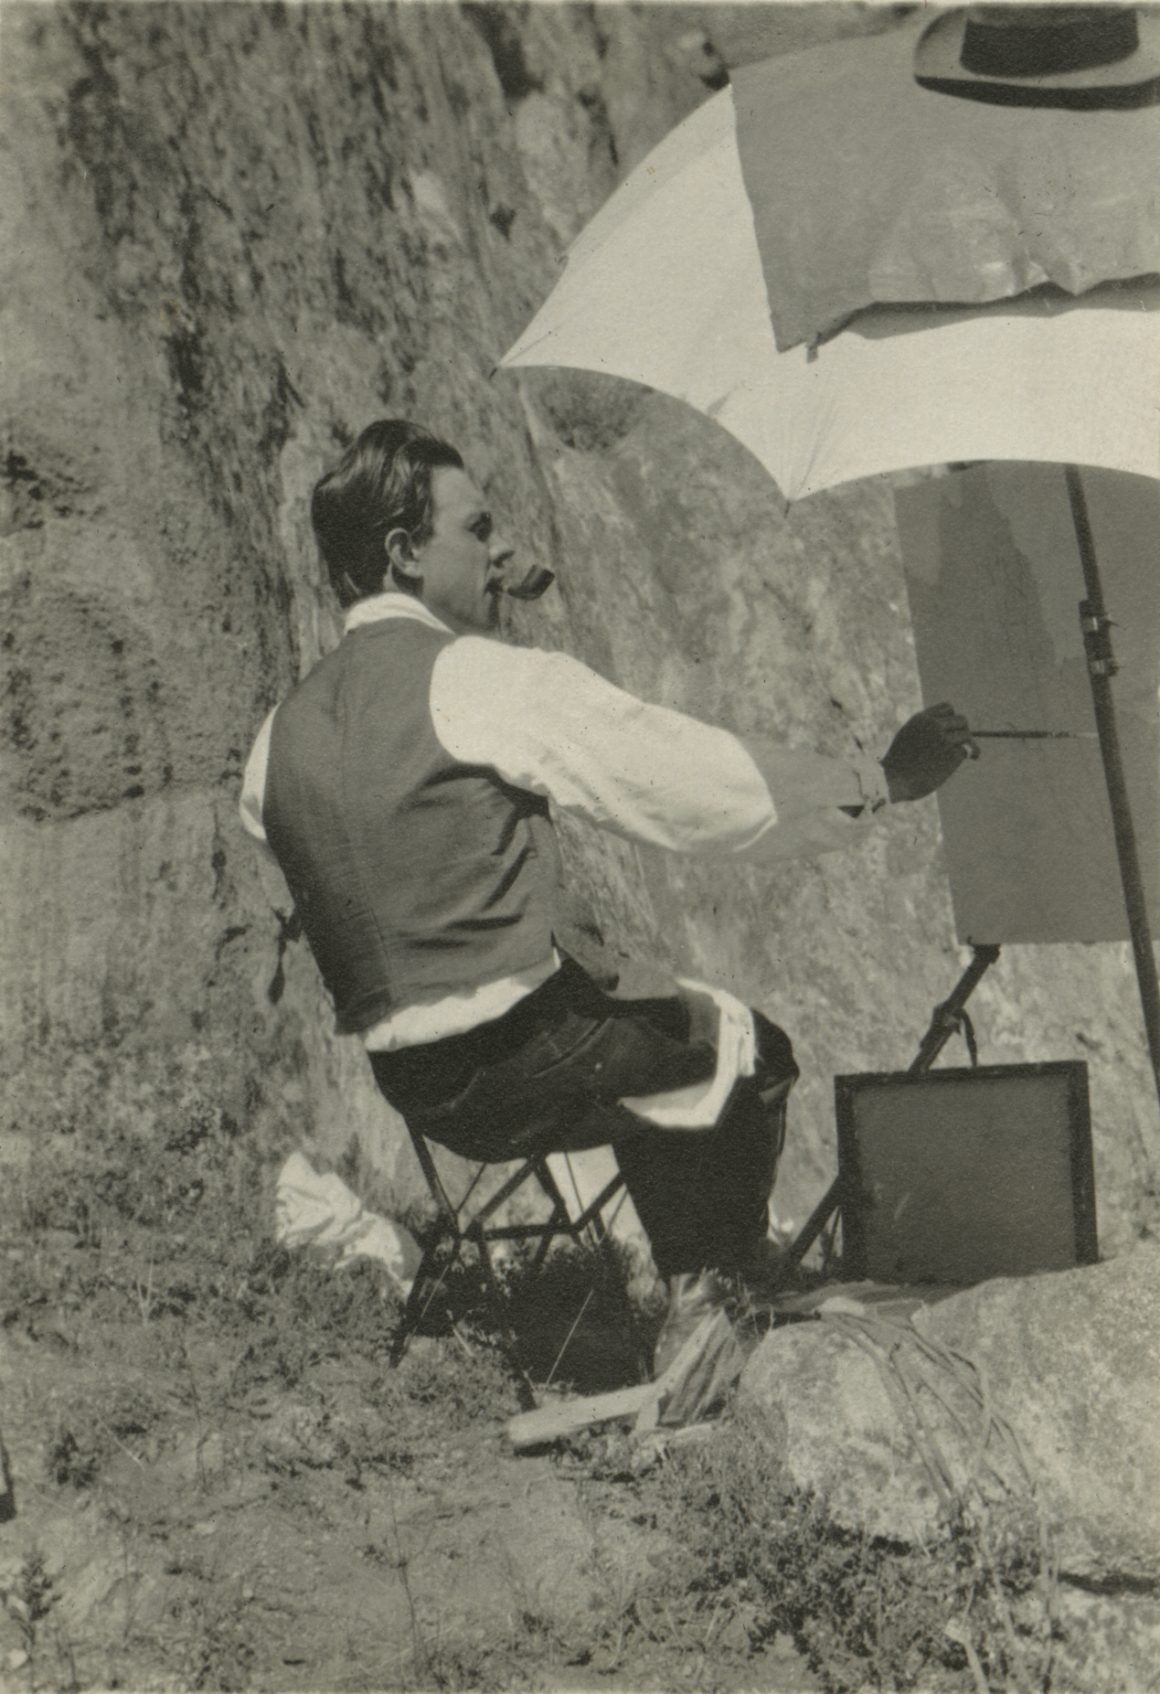 A black and white photograph of Raymond Jonson painting in Boulder Colorado, 1917